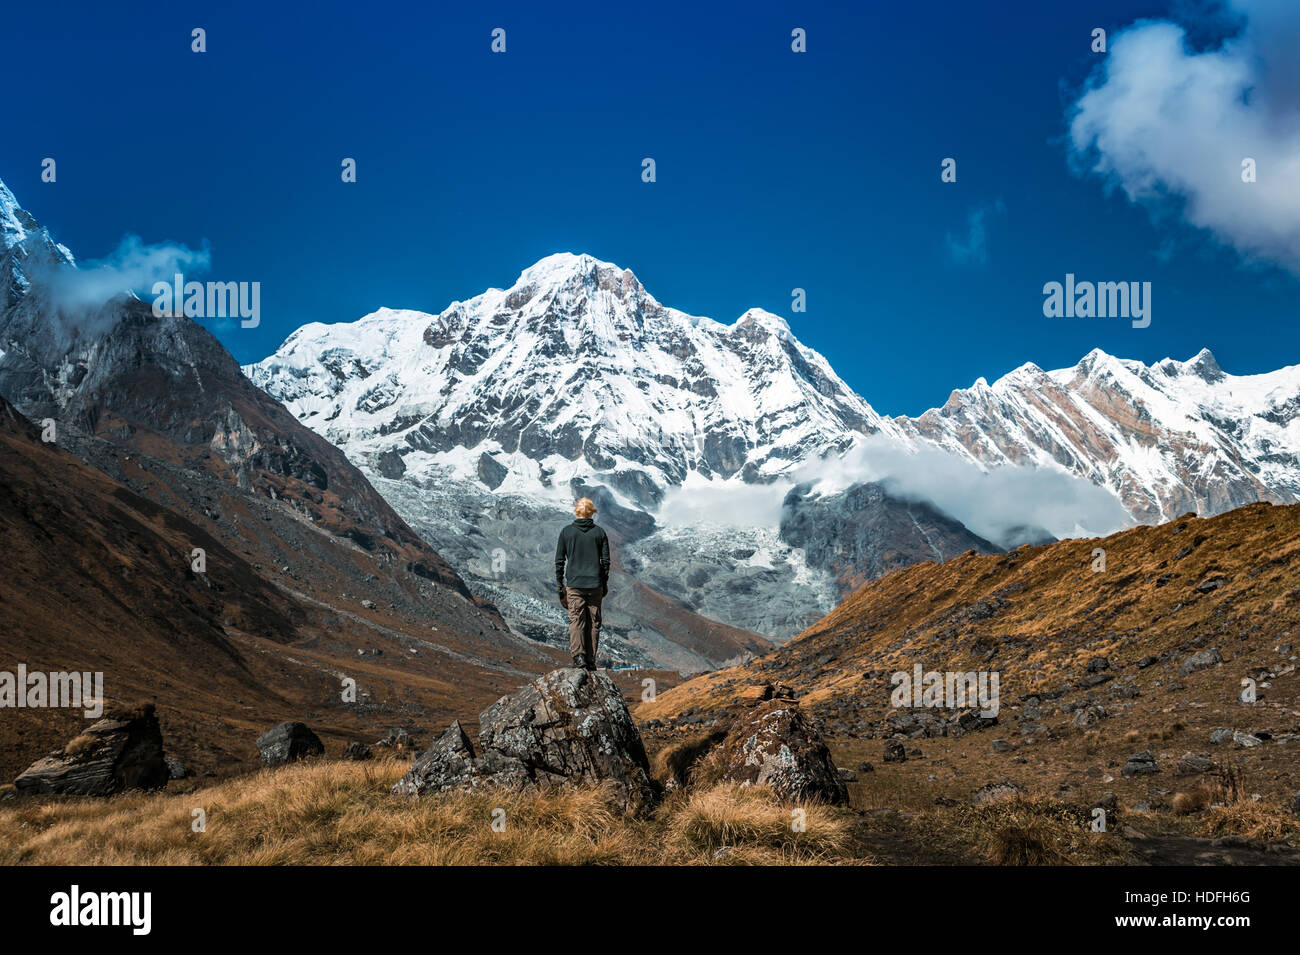 Young man stands alone in the mountains. - Stock Image